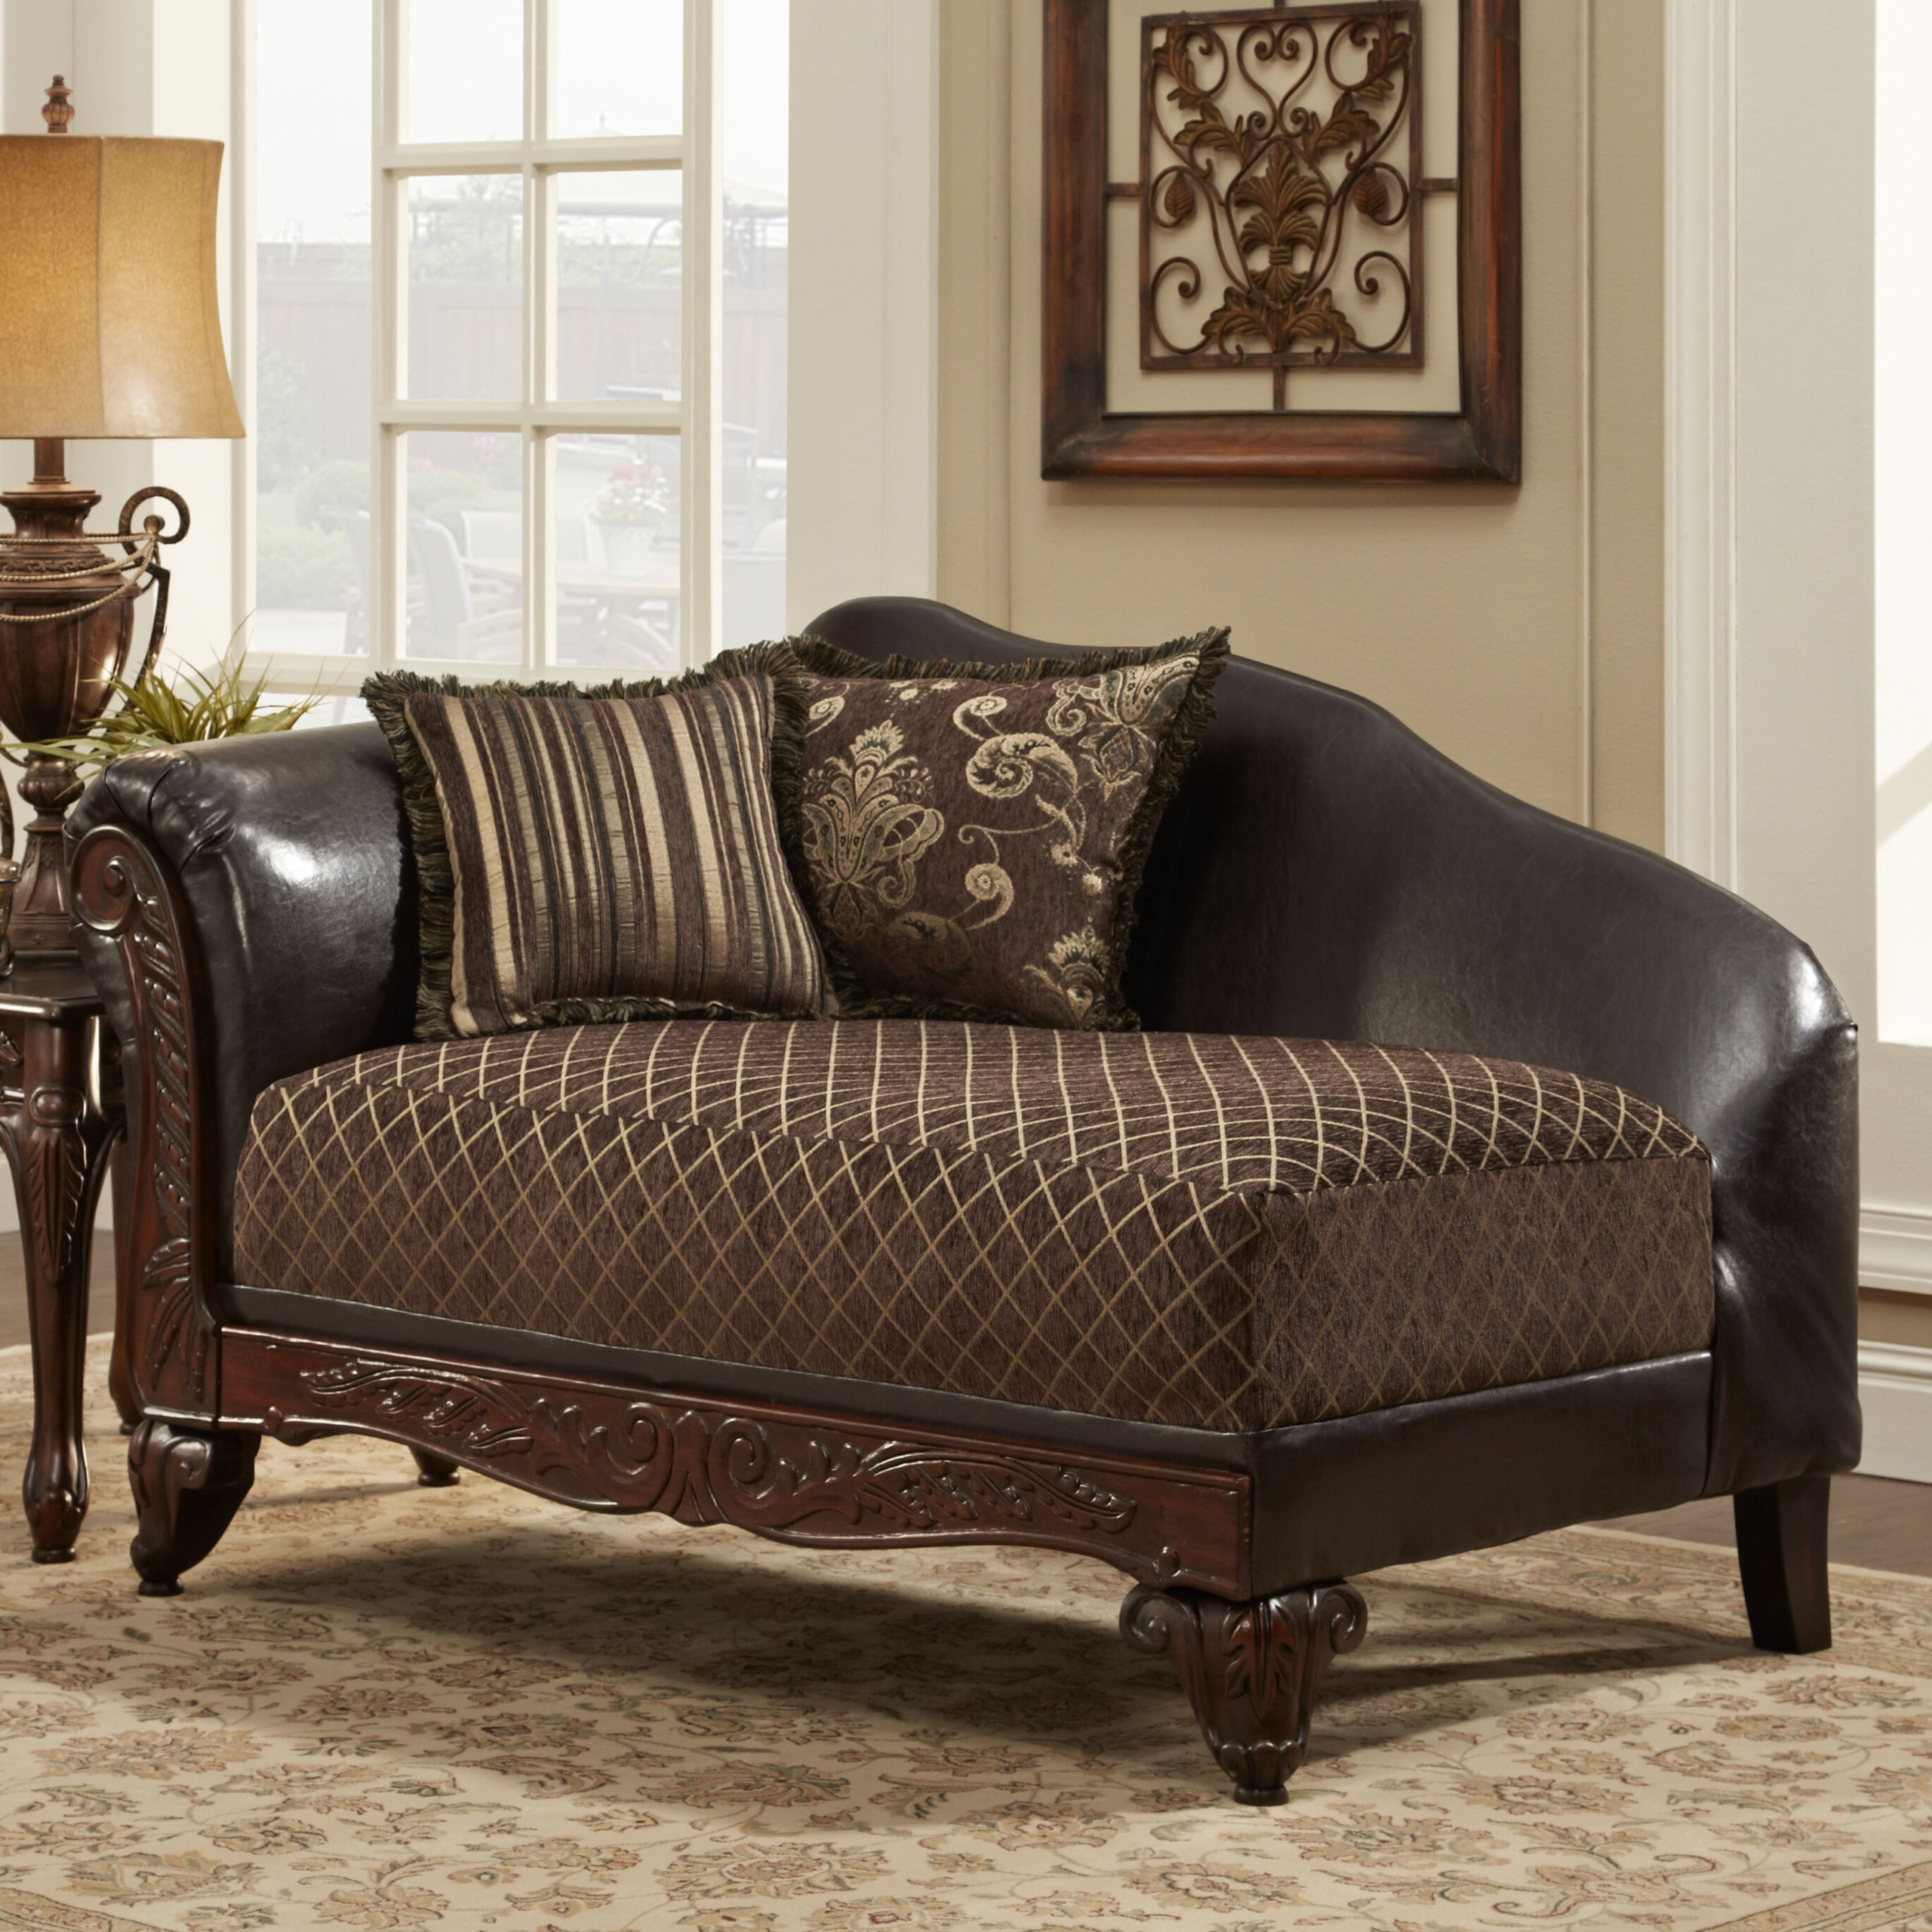 living room chaise lounge chair covers for folding chairs bedroom visual hunt home design ideas